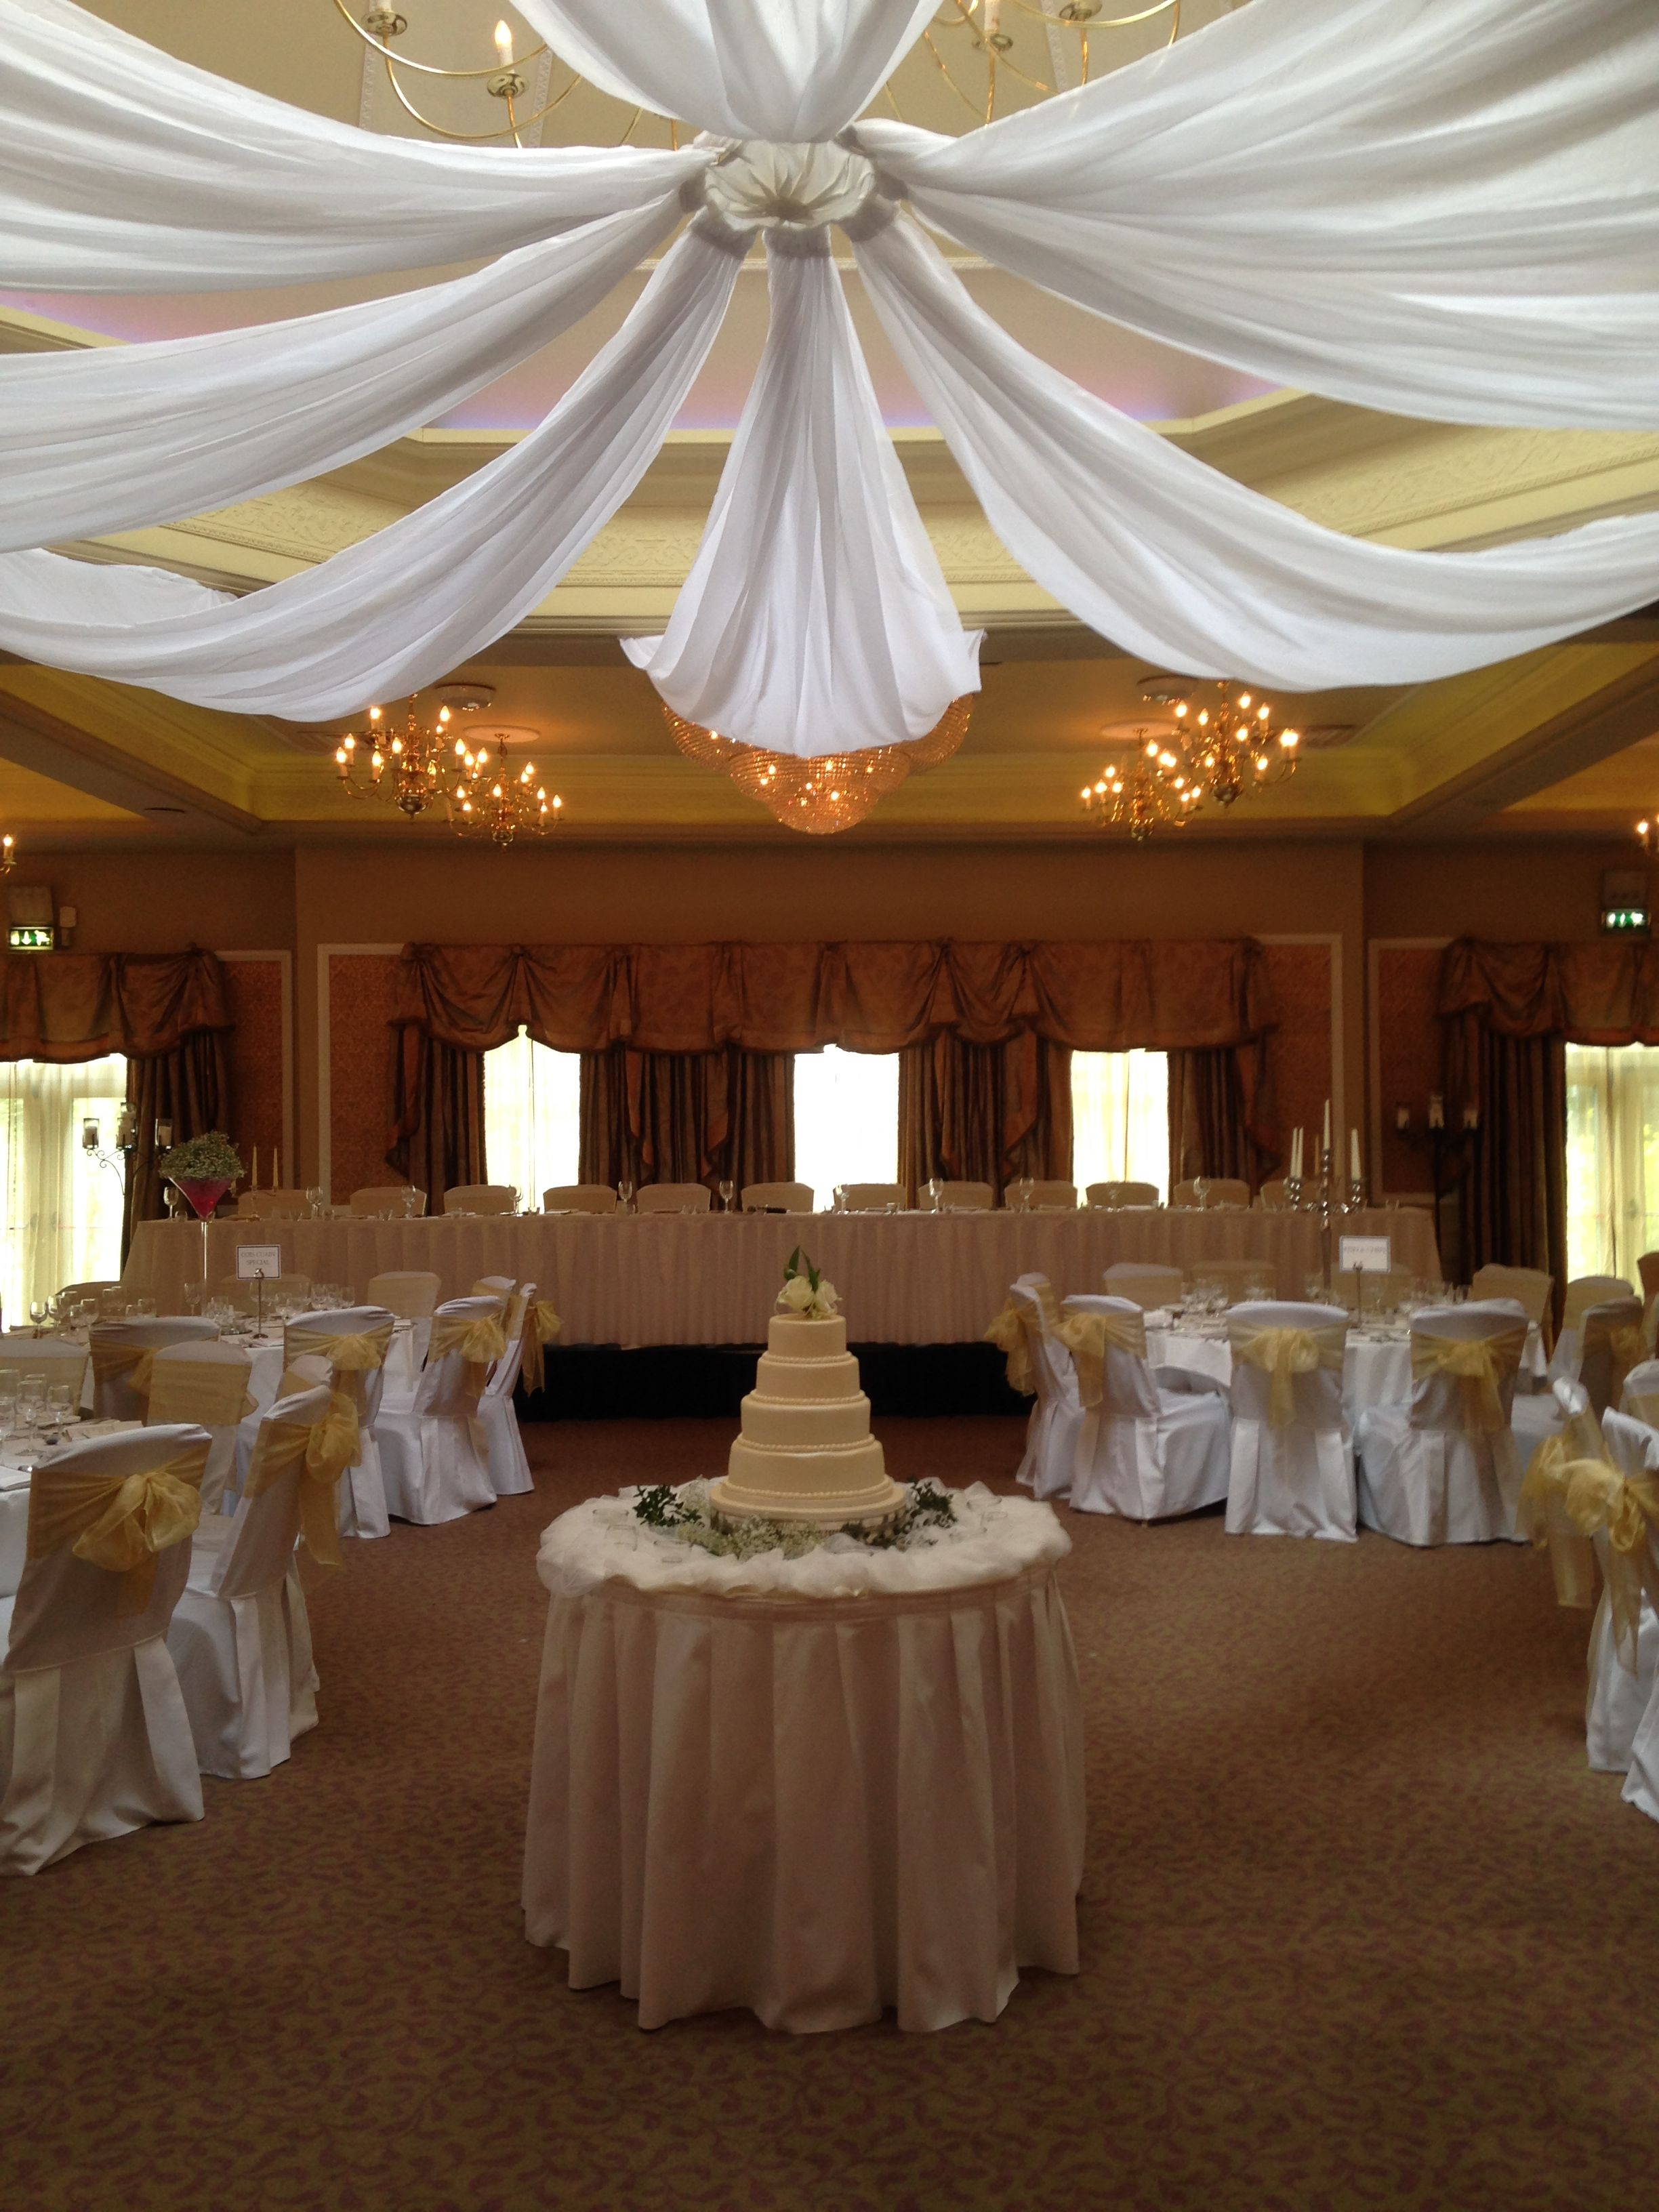 Ceiling Drapes Westport Www Perfect Details Com Wedding Ceiling Decorations Wedding Ceiling Ceiling Decor